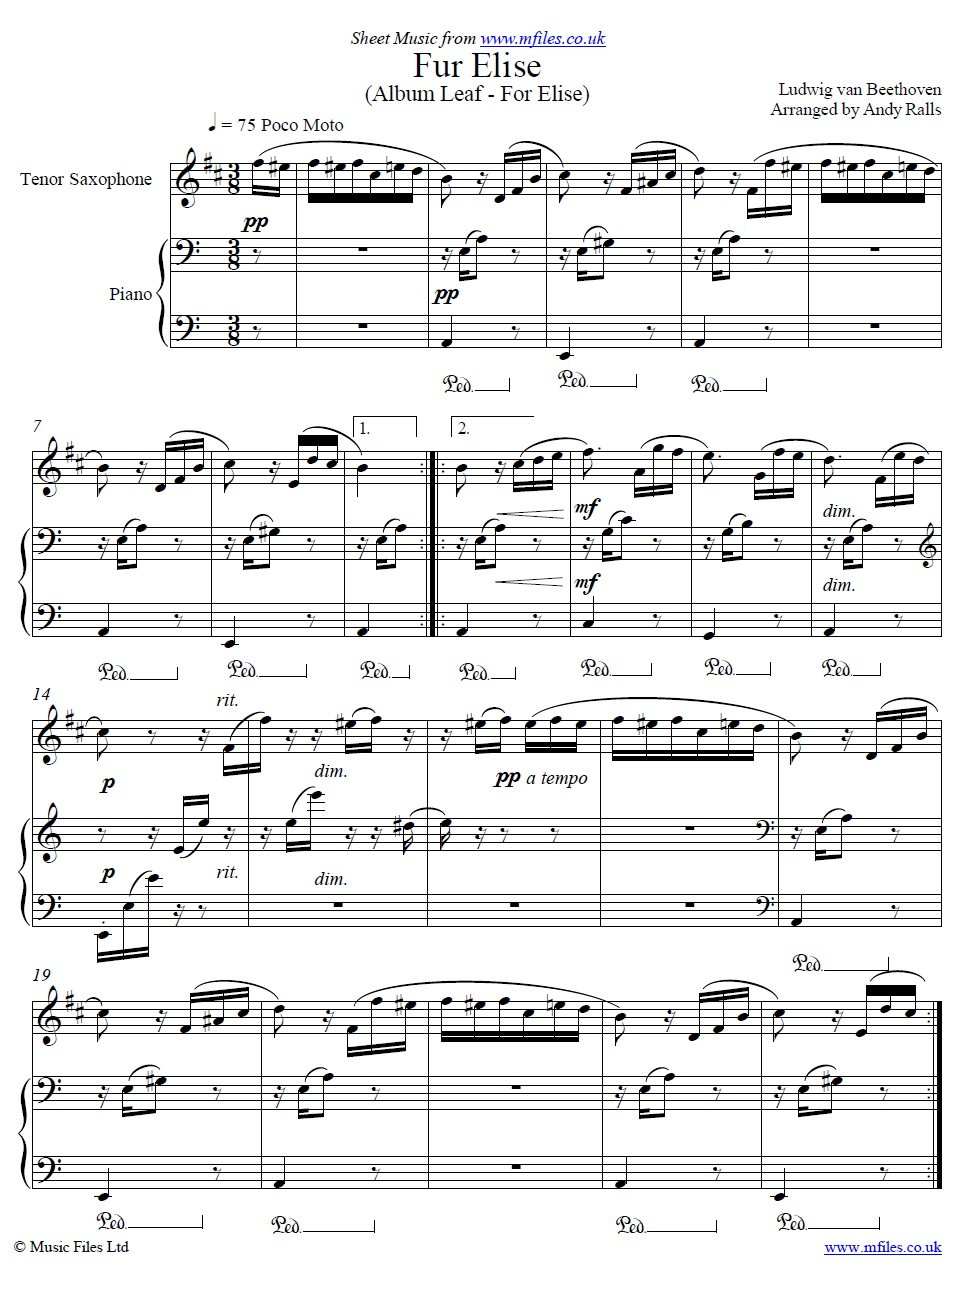 Beethoven's Fur Elise for tenor sax and piano - sheet music 1st page